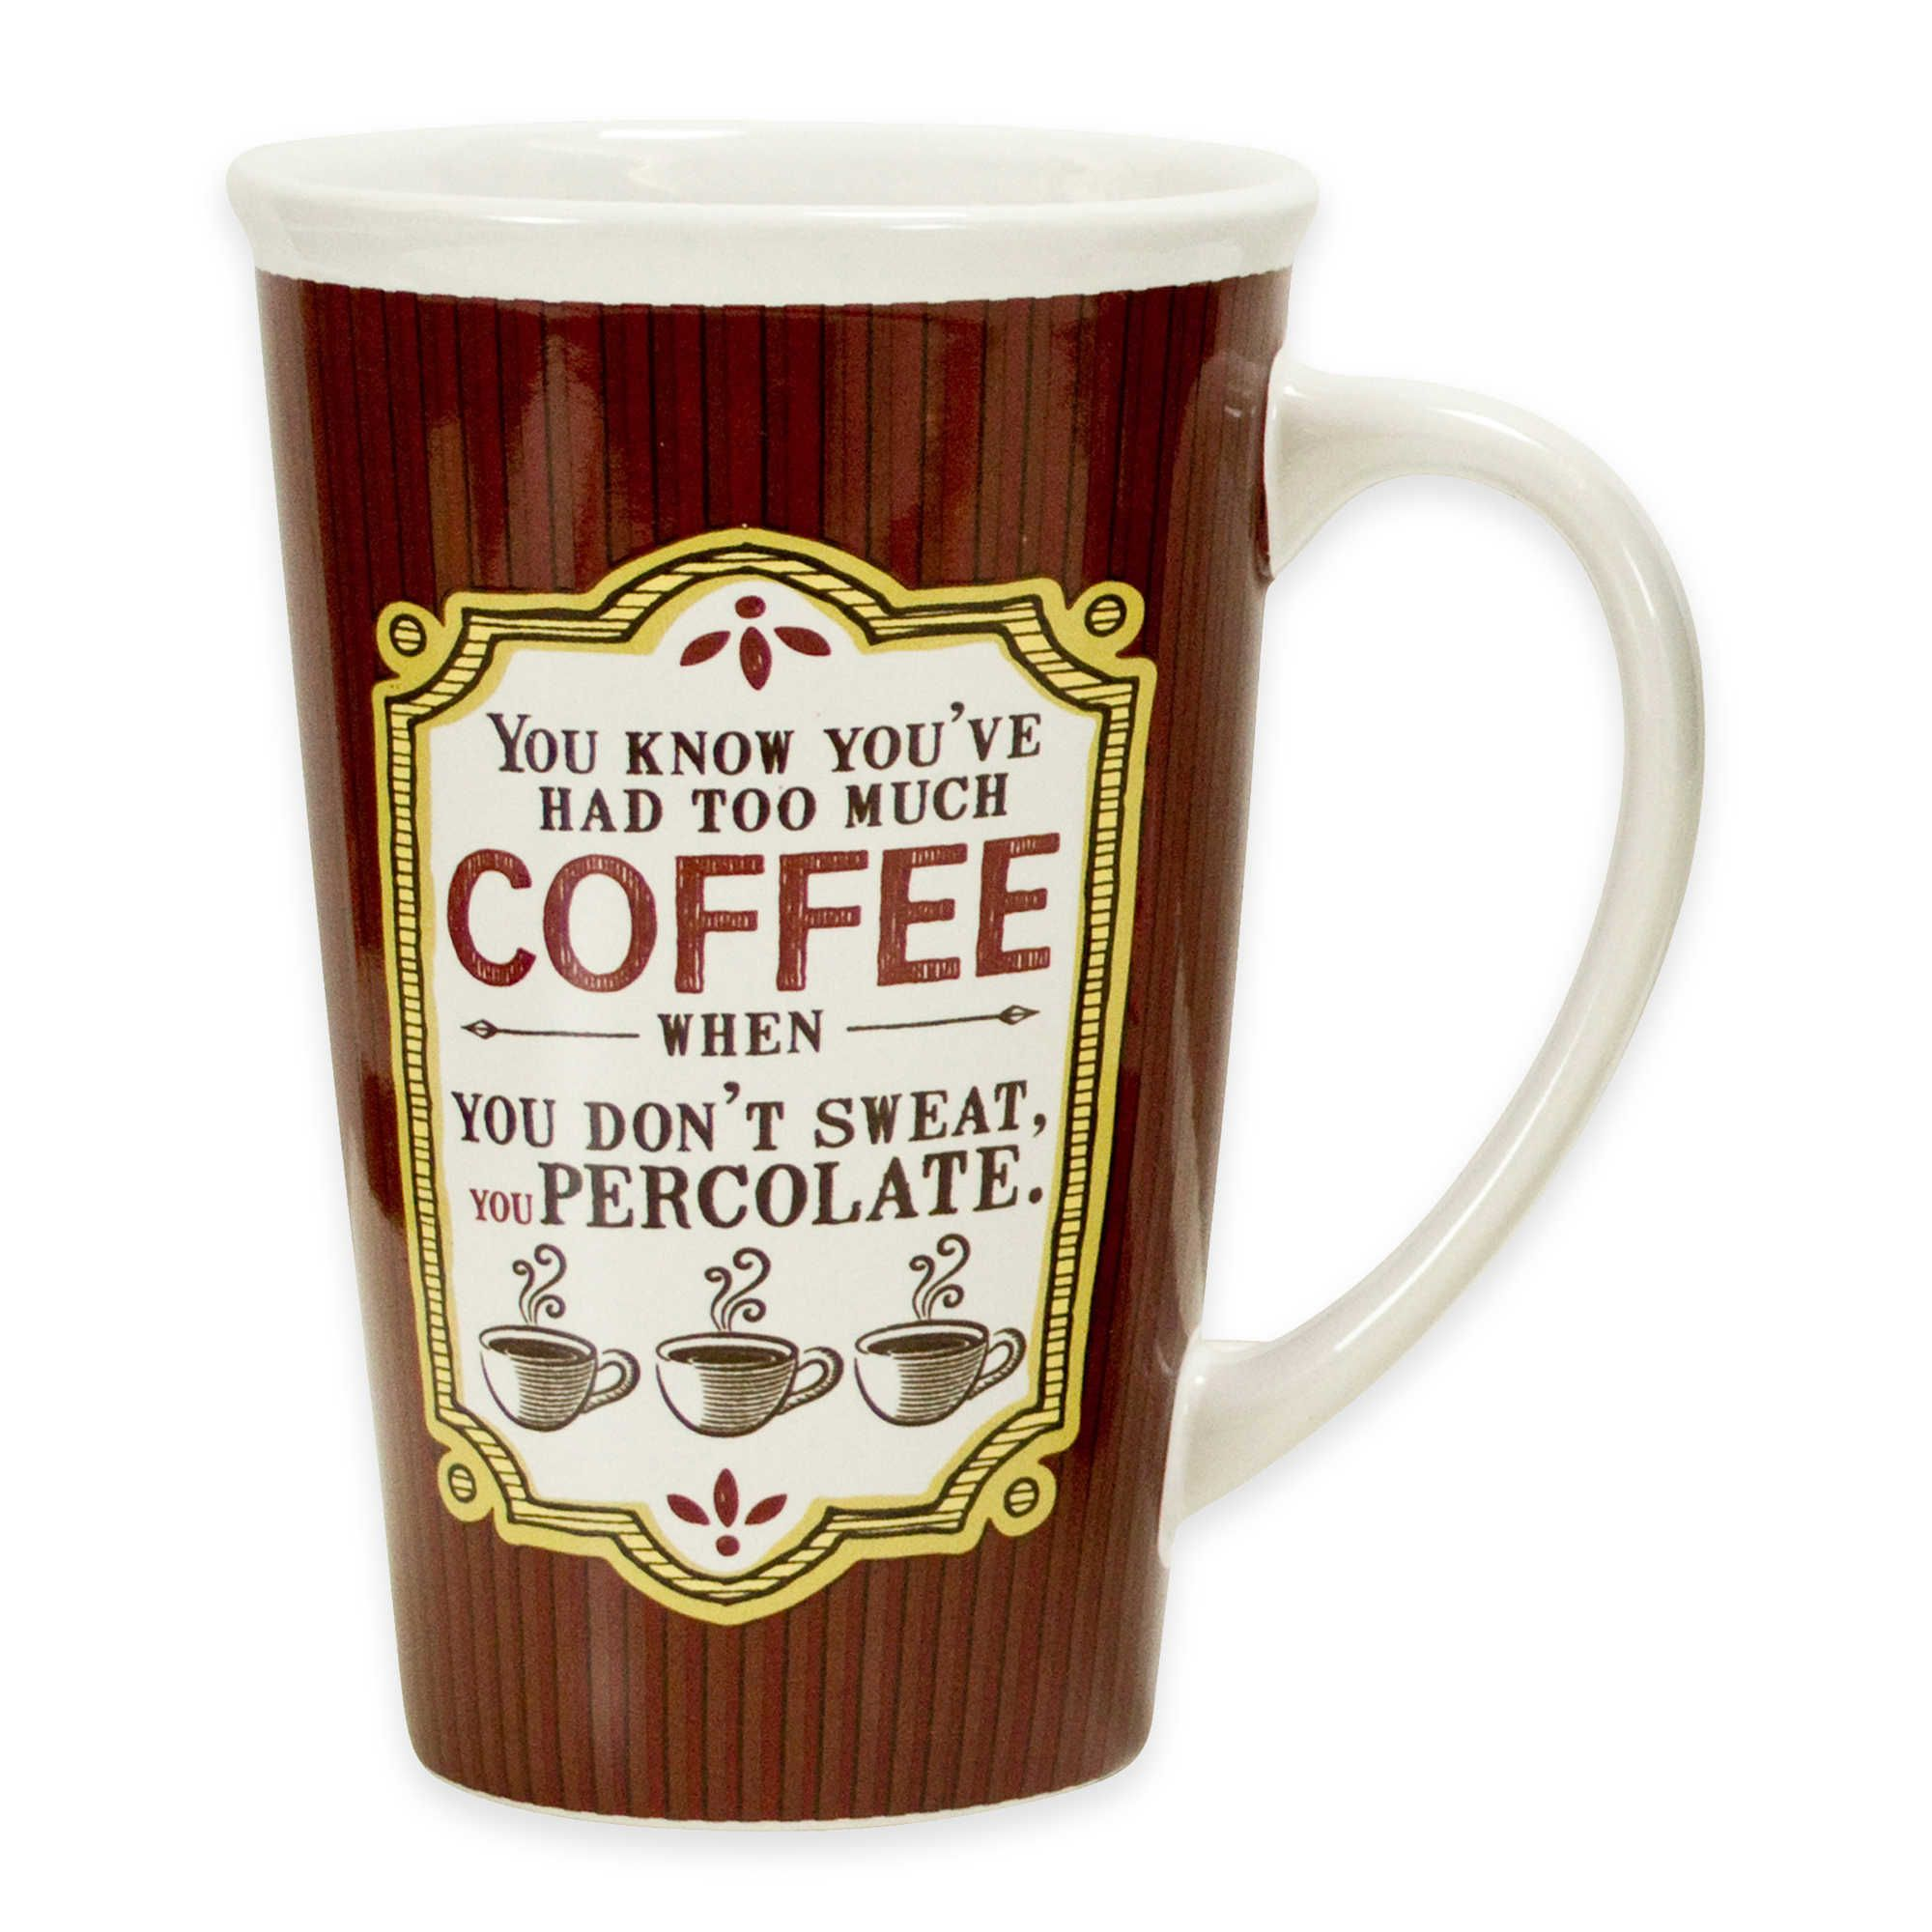 Get Your Caffeine Buzz Started With This 22 Oz Too Much Coffee Mega Mug A Sure Way To Drink Lots Of Your Favorite Brew This Mugs Too Much Coffee Coffee Love